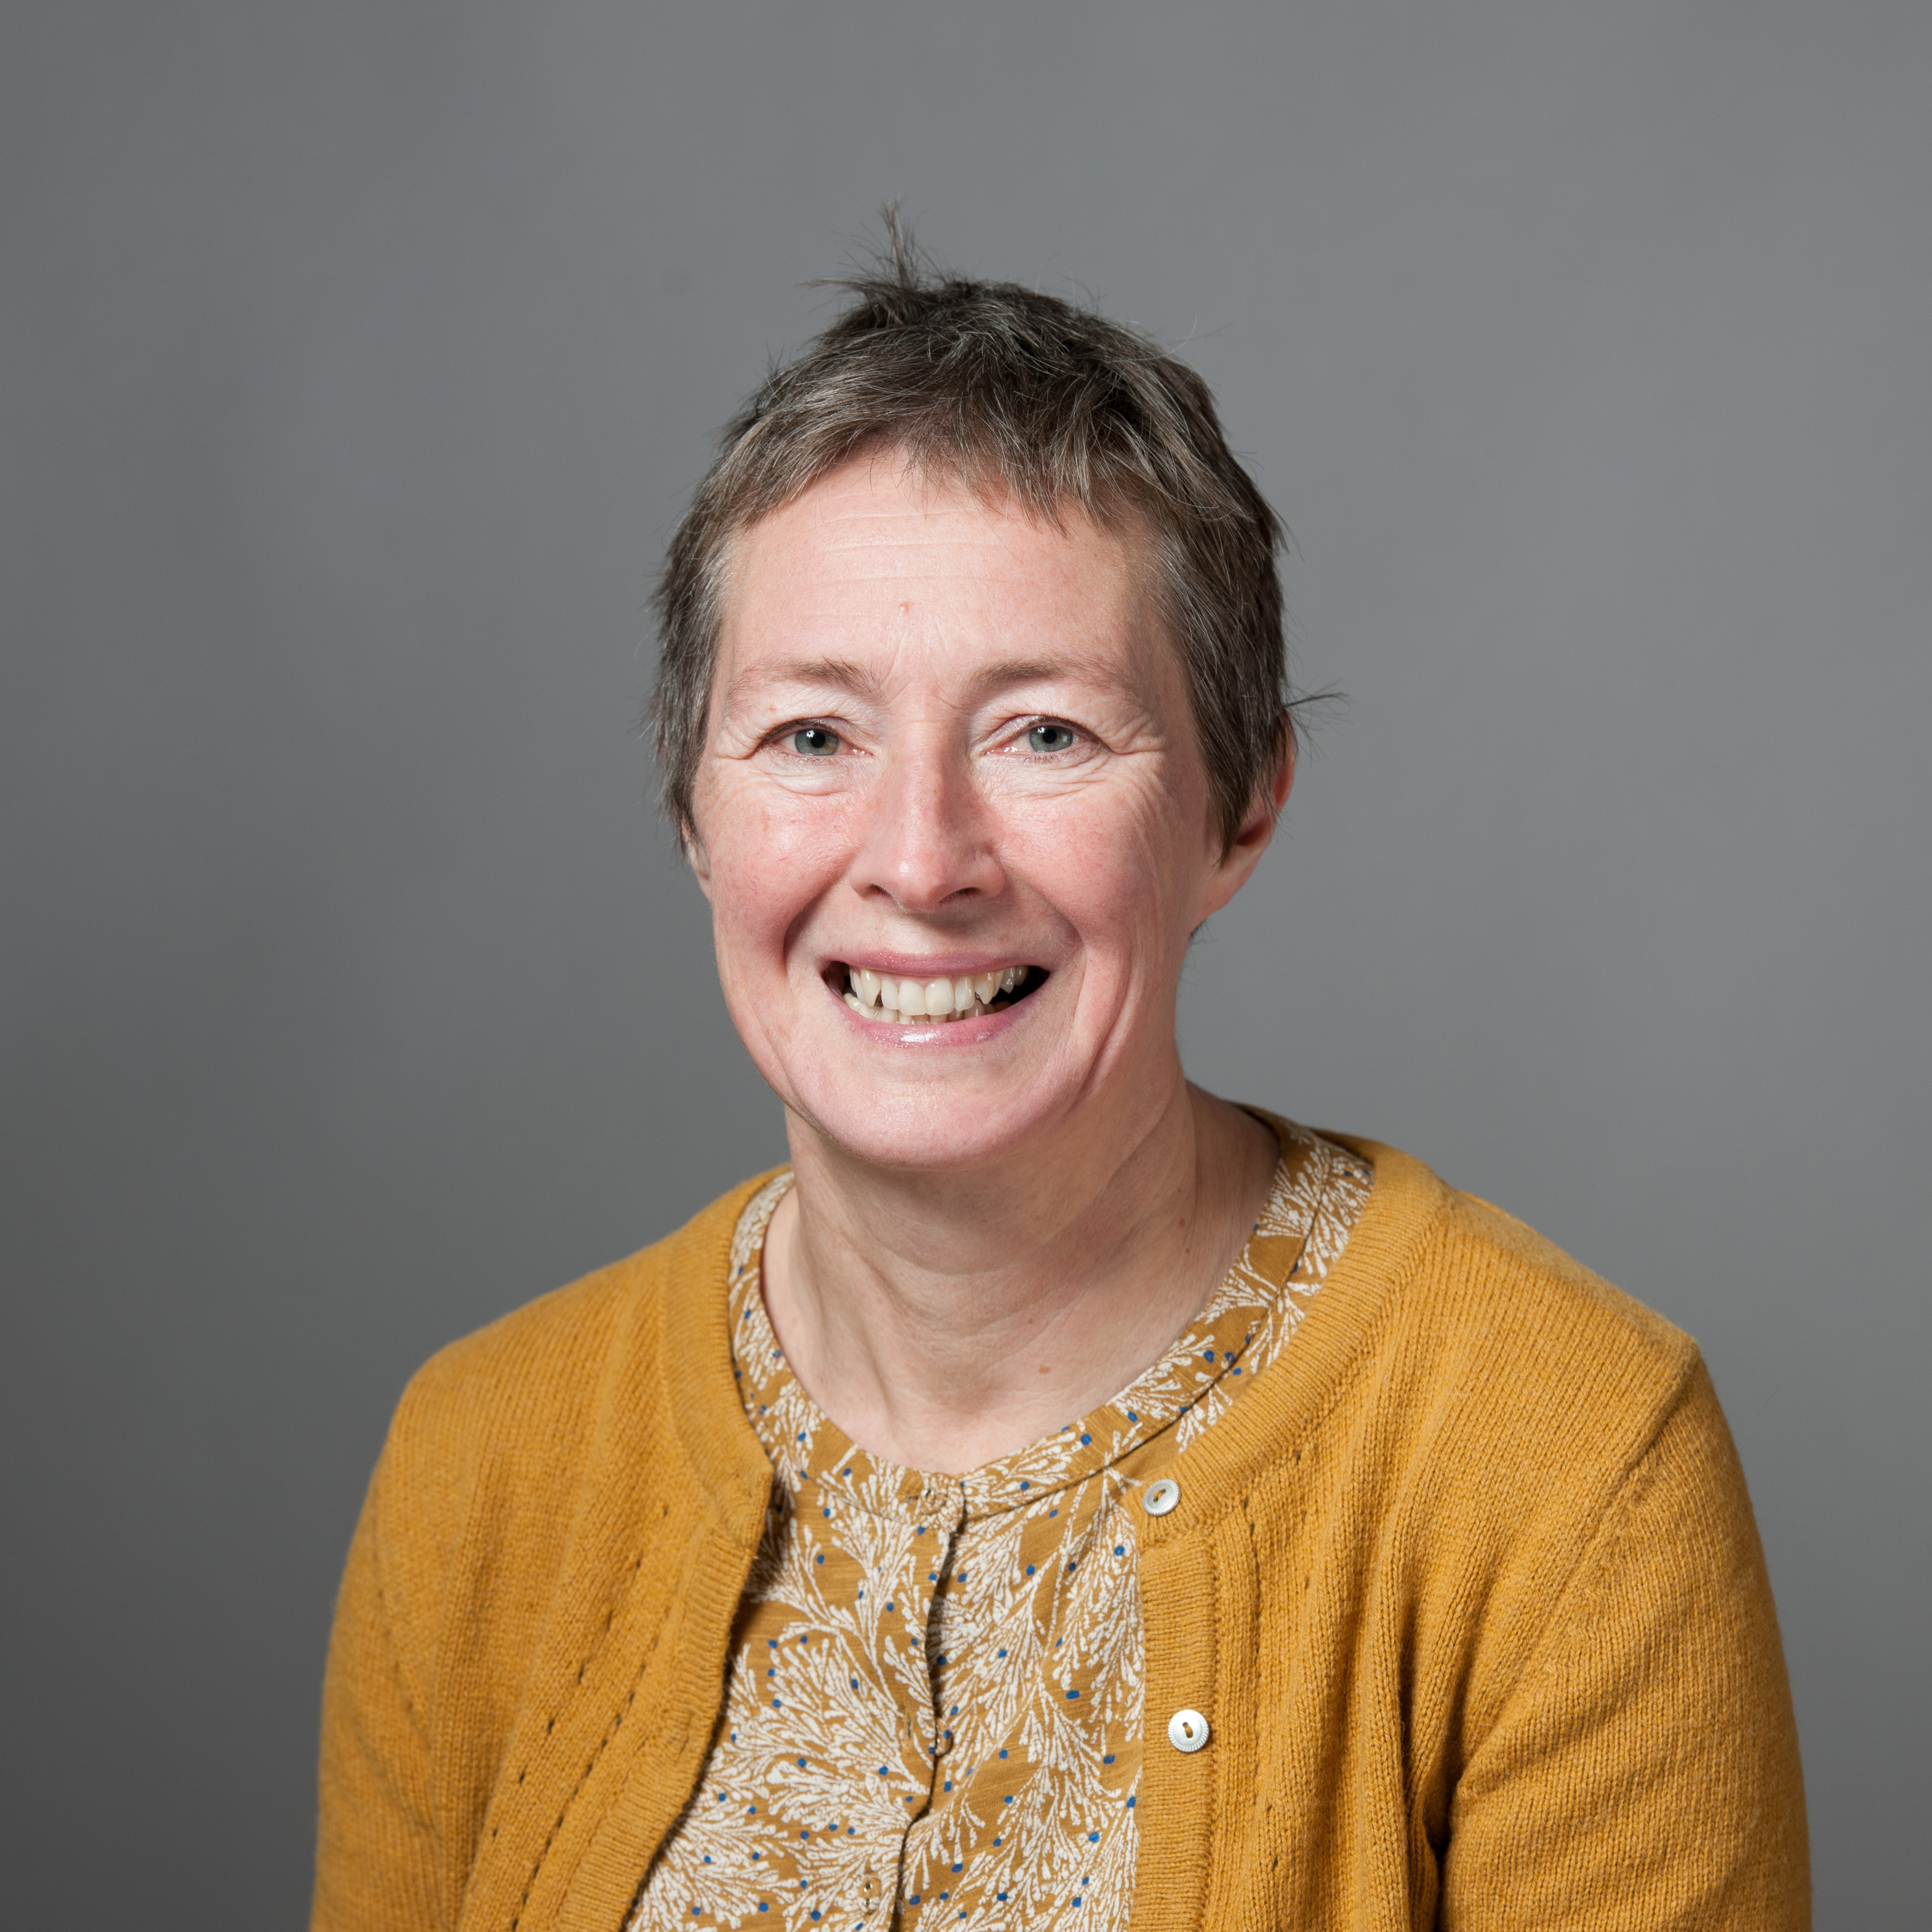 Image of Ms Mandy Stoker - Credit Rothamsted Research